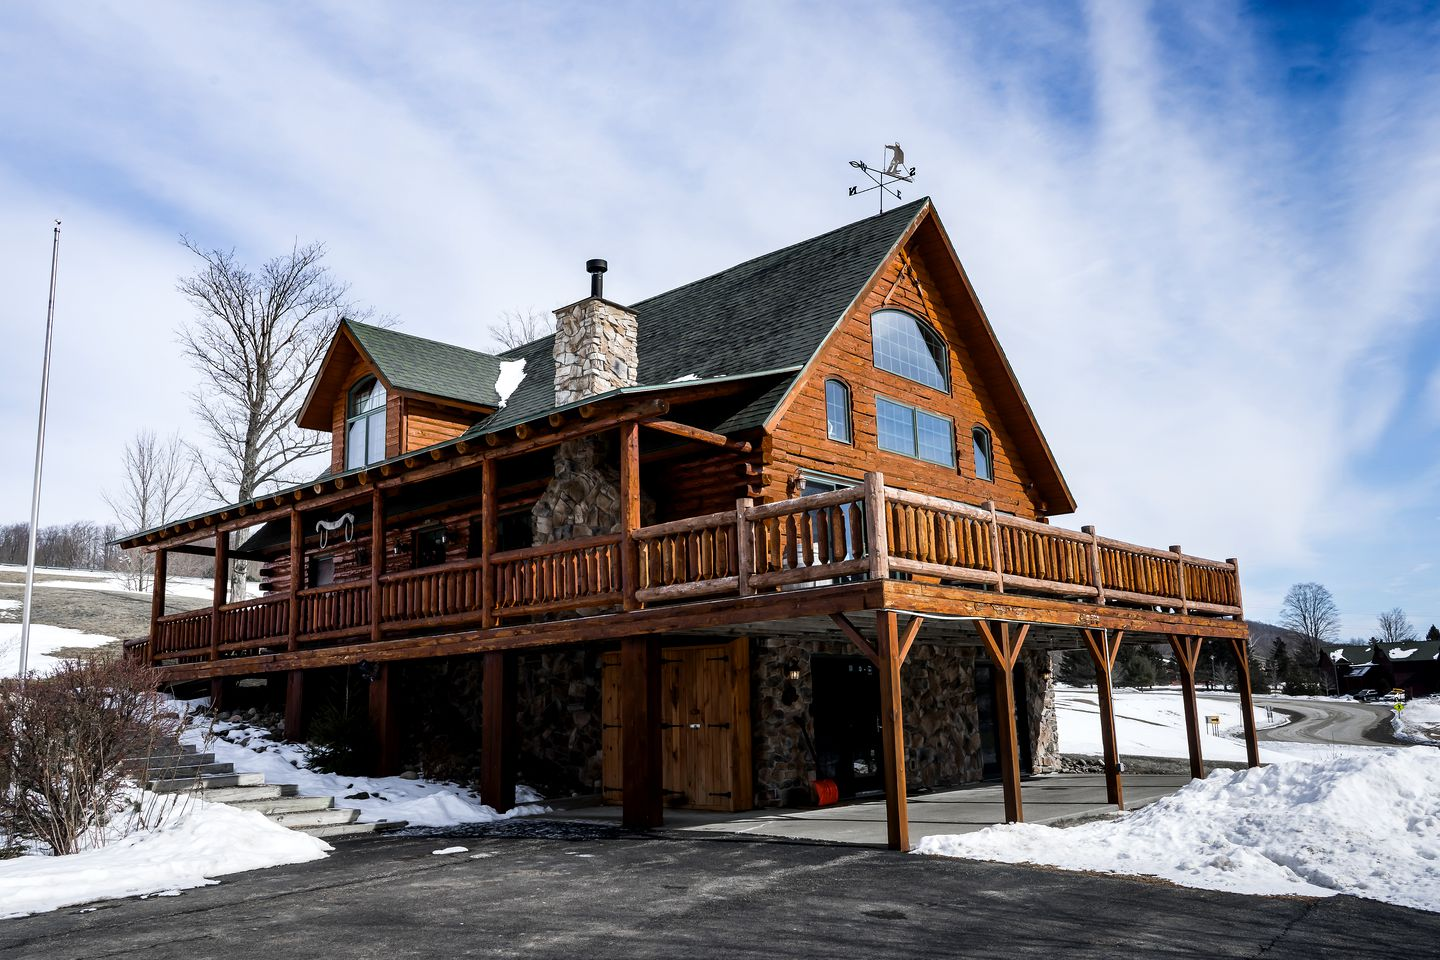 Magnificent Cabin Rental with Private Hot Tub near City of Auburn, New York